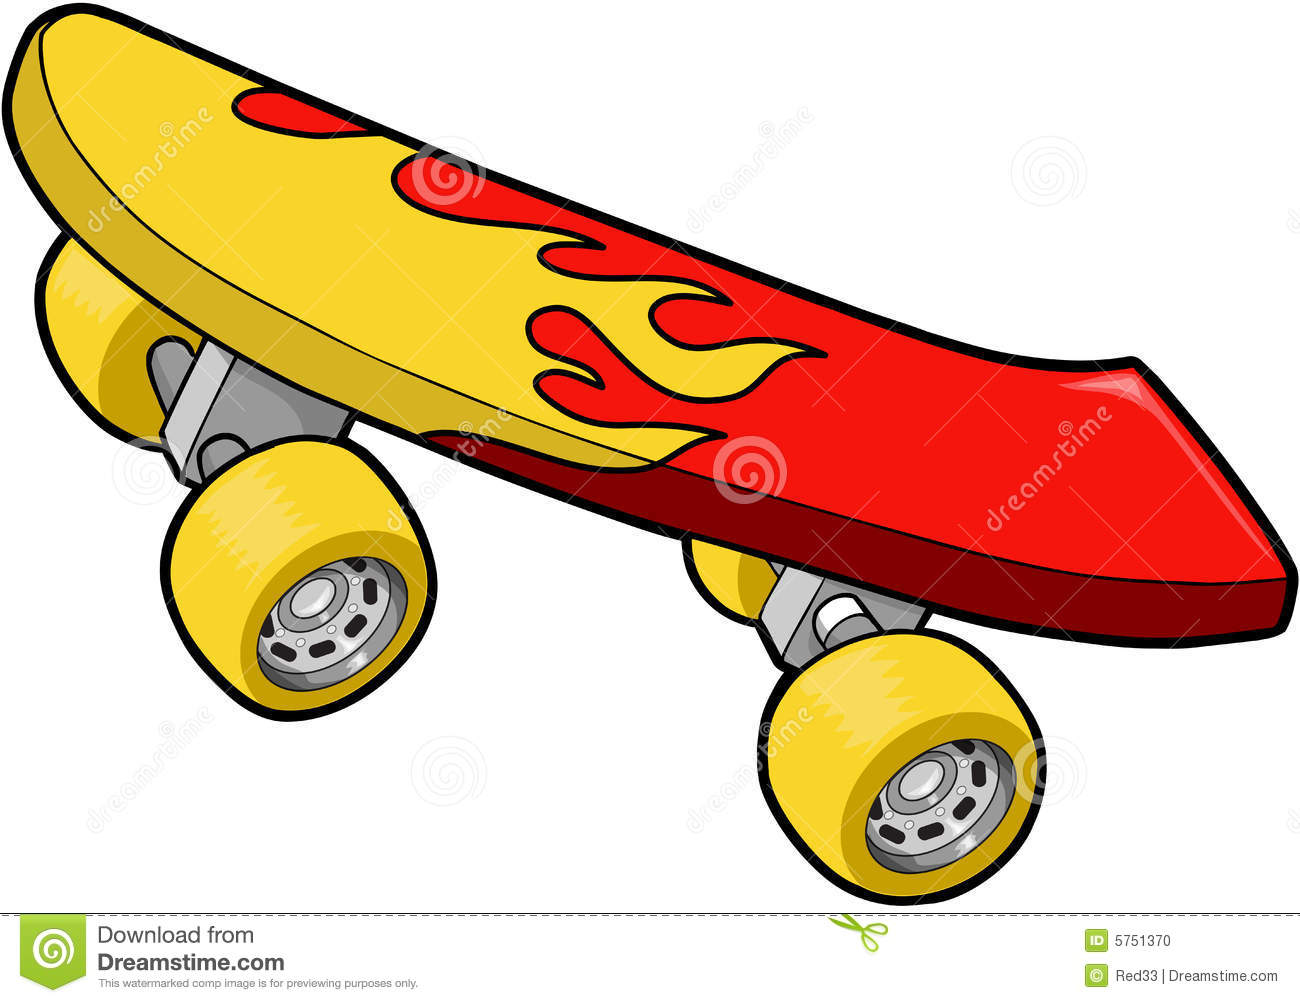 Skate board clipart svg transparent stock Skateboard Clipart | Clipart Panda - Free Clipart Images svg transparent stock